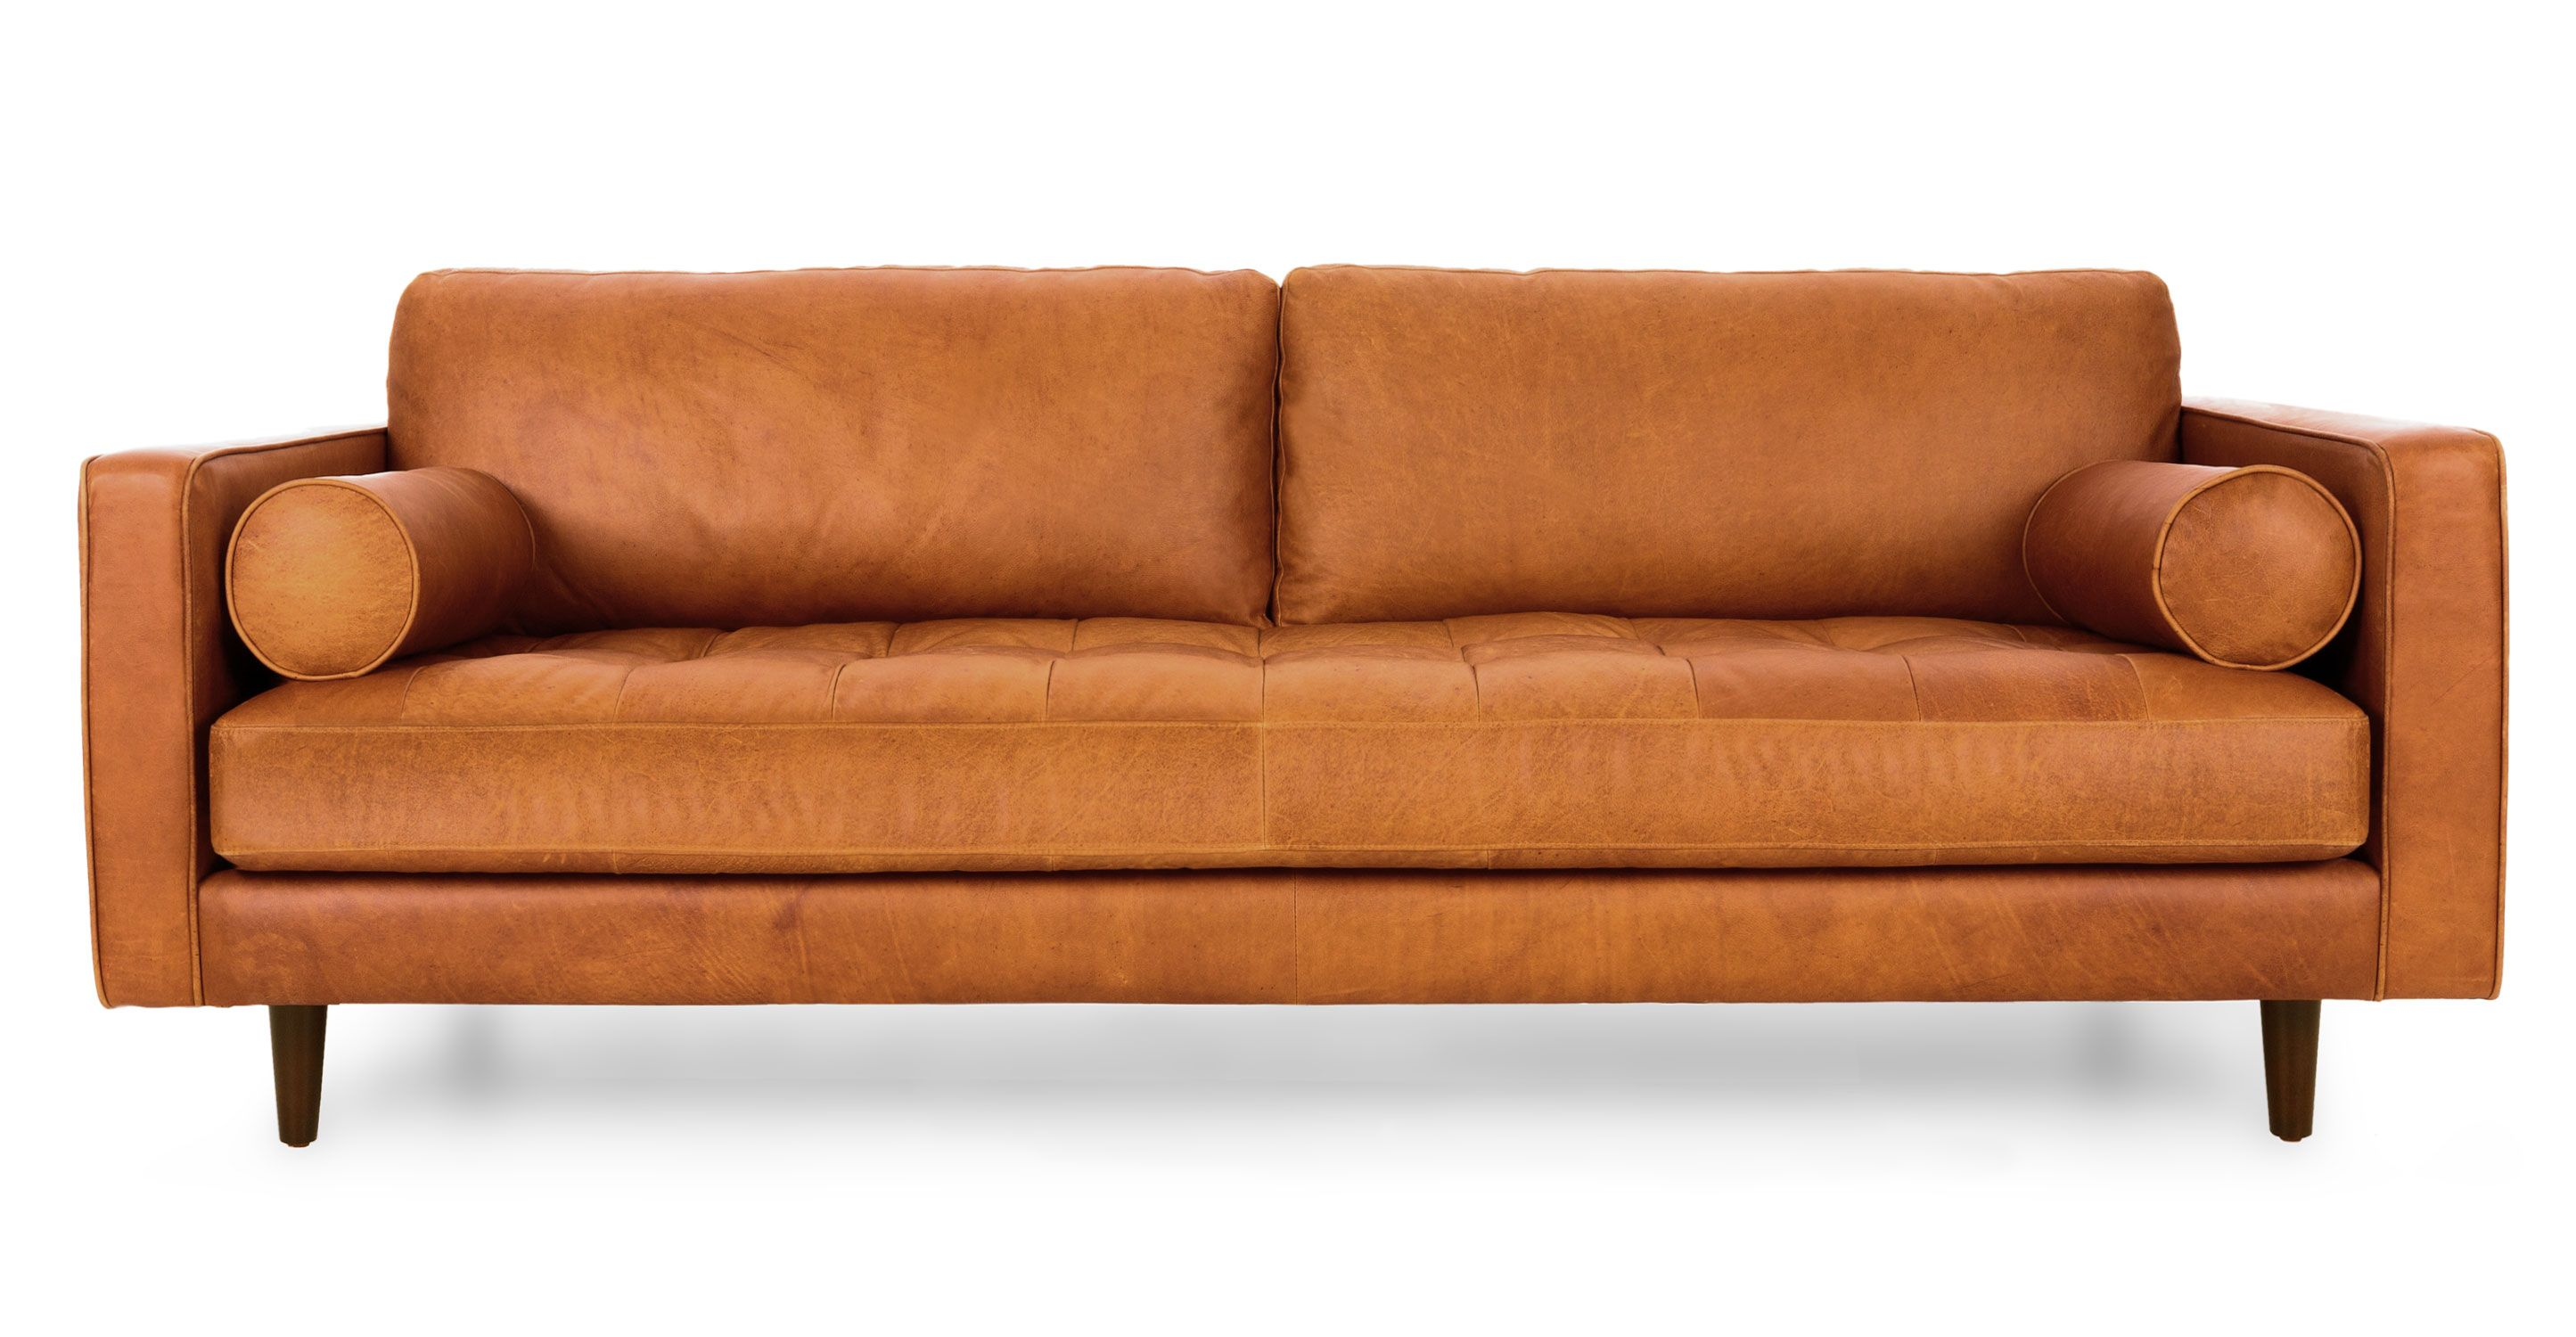 Tan brown leather sofa italian leather article sven for Leather furniture